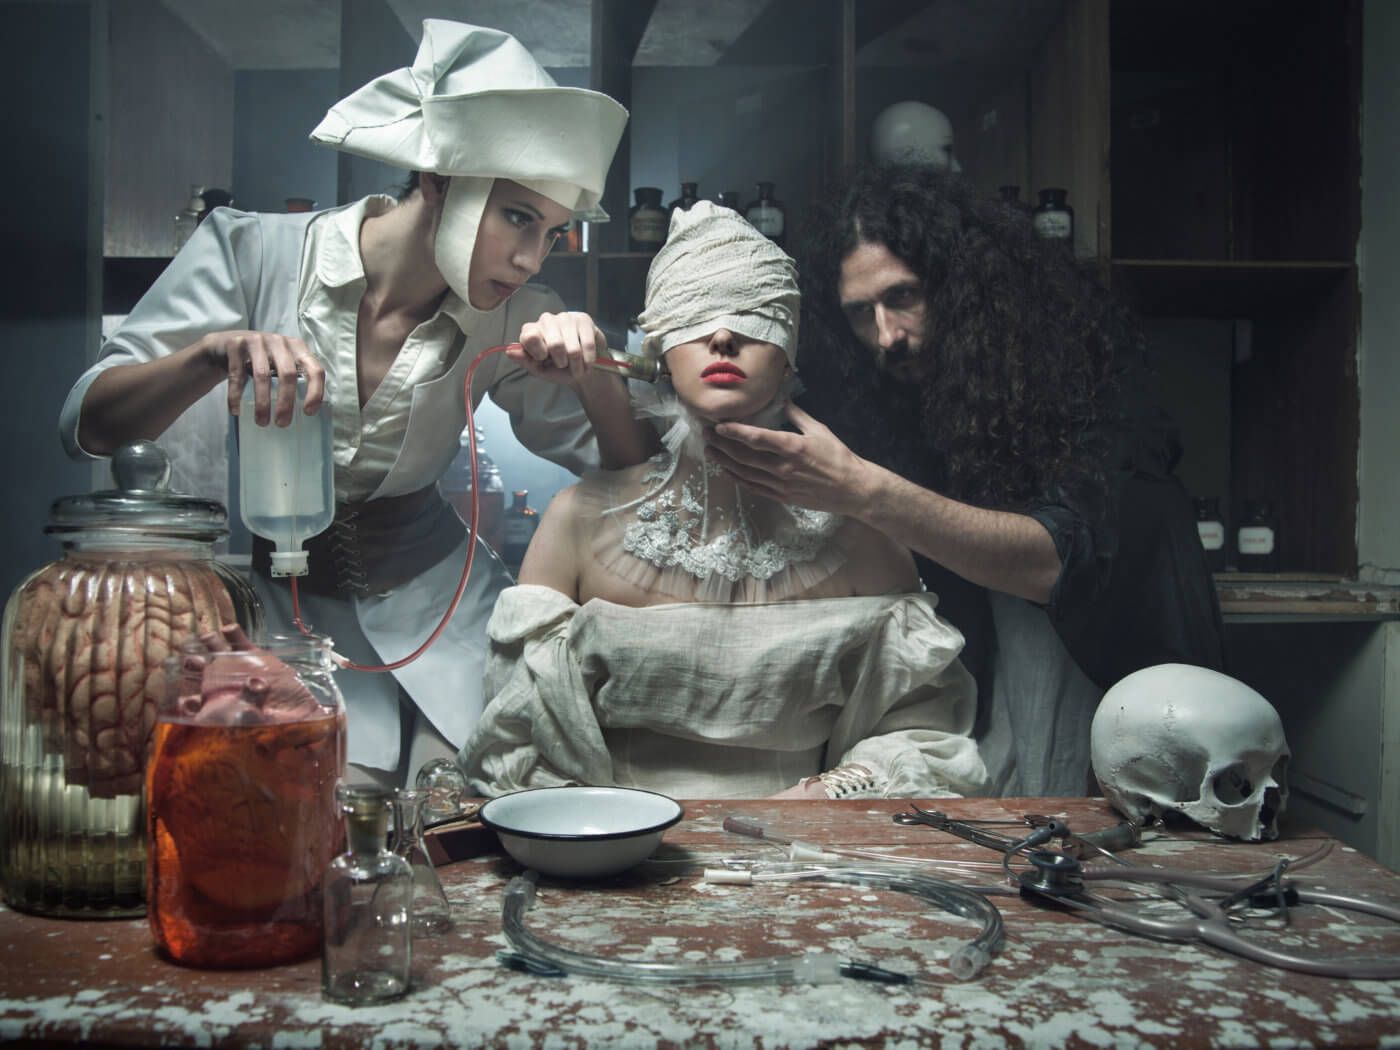 Frightening methods of healing in the old haunted hospital